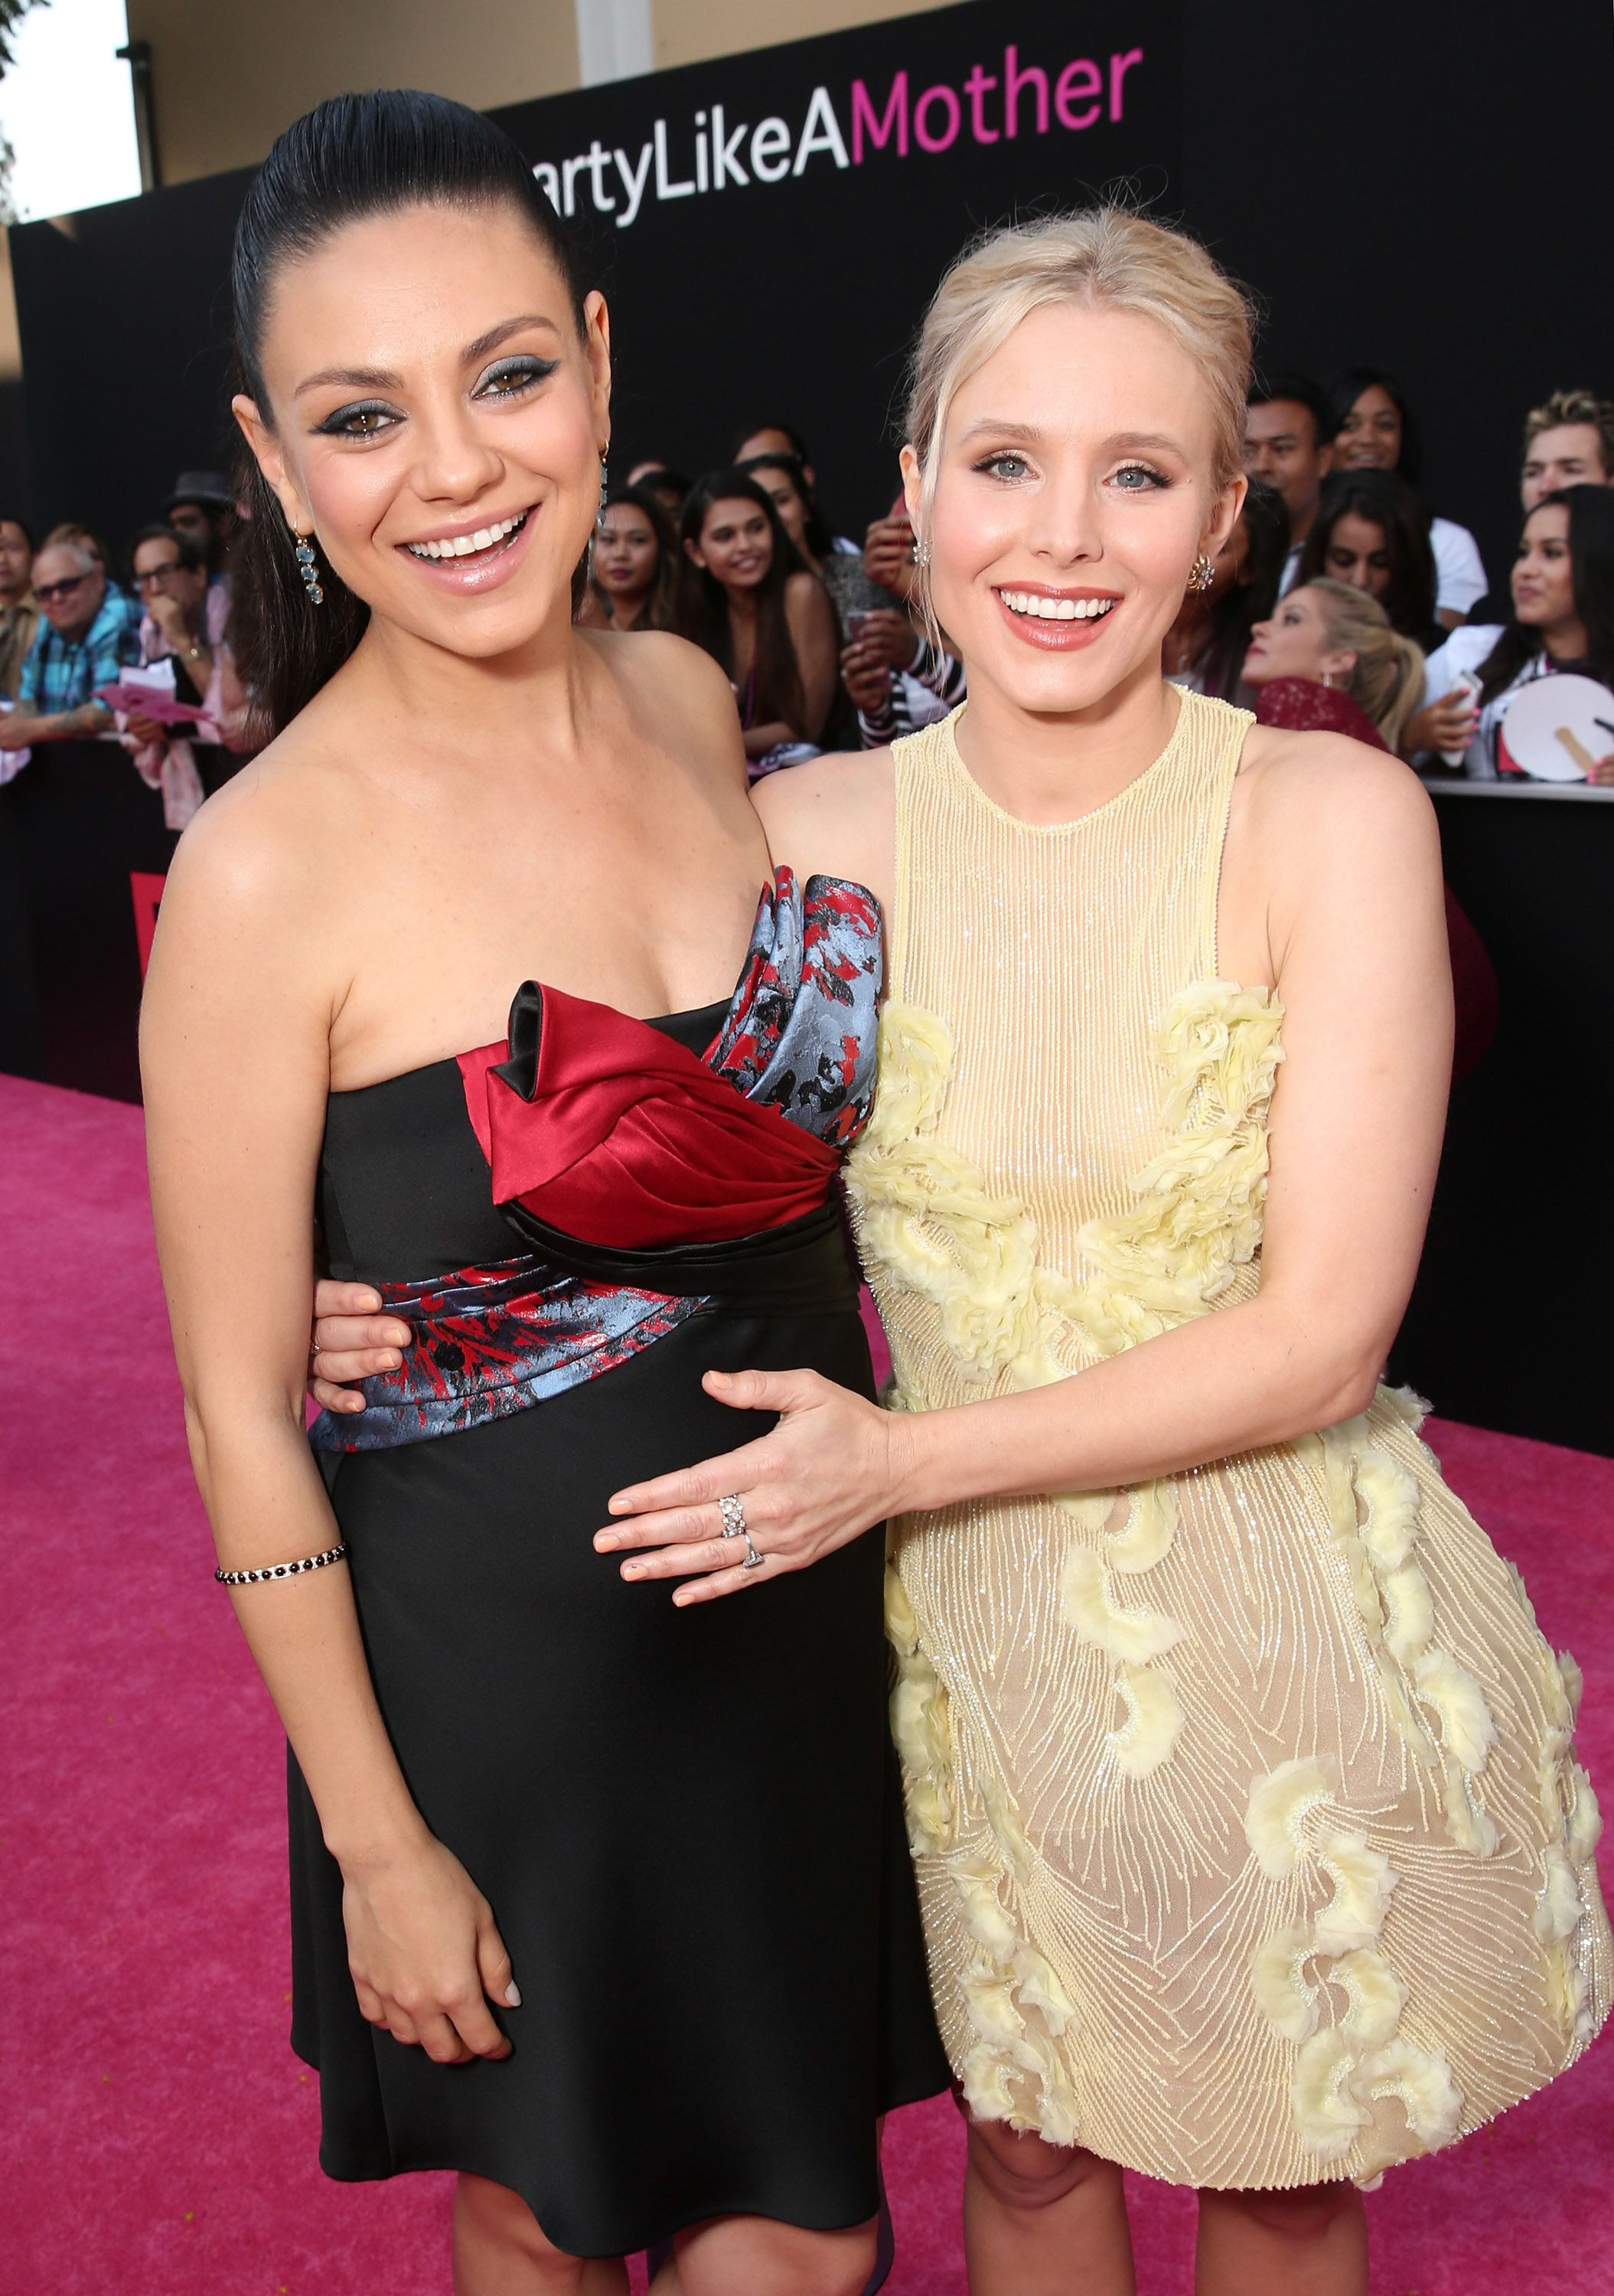 WESTWOOD, CA - JULY 26:  Mila Kunis and Kristen Bell attend the premiere Of STX Entertainment's 'Bad Moms' at Mann Village Theatre on July 26, 2016 in Westwood, California.  (Photo by Todd Williamson/Getty Images)